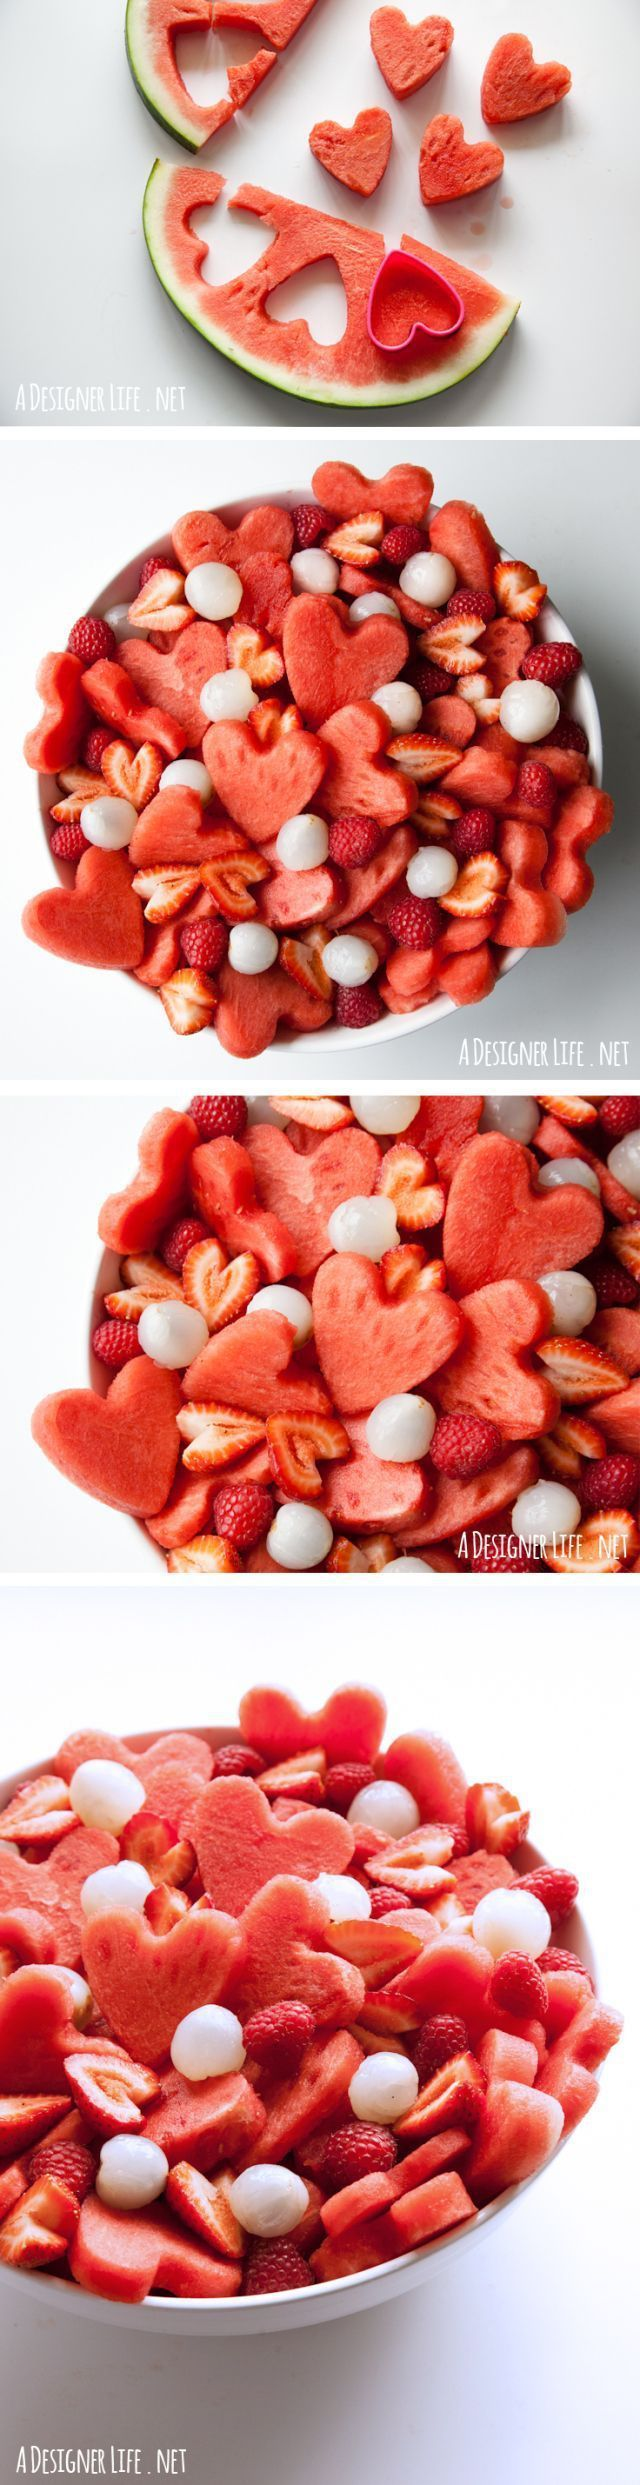 Watermelon heart fruit salad. Using a heart cookie cutter, this would be adorable for an engagement party, shower, or anniversary party. (valentine deserts recipes)